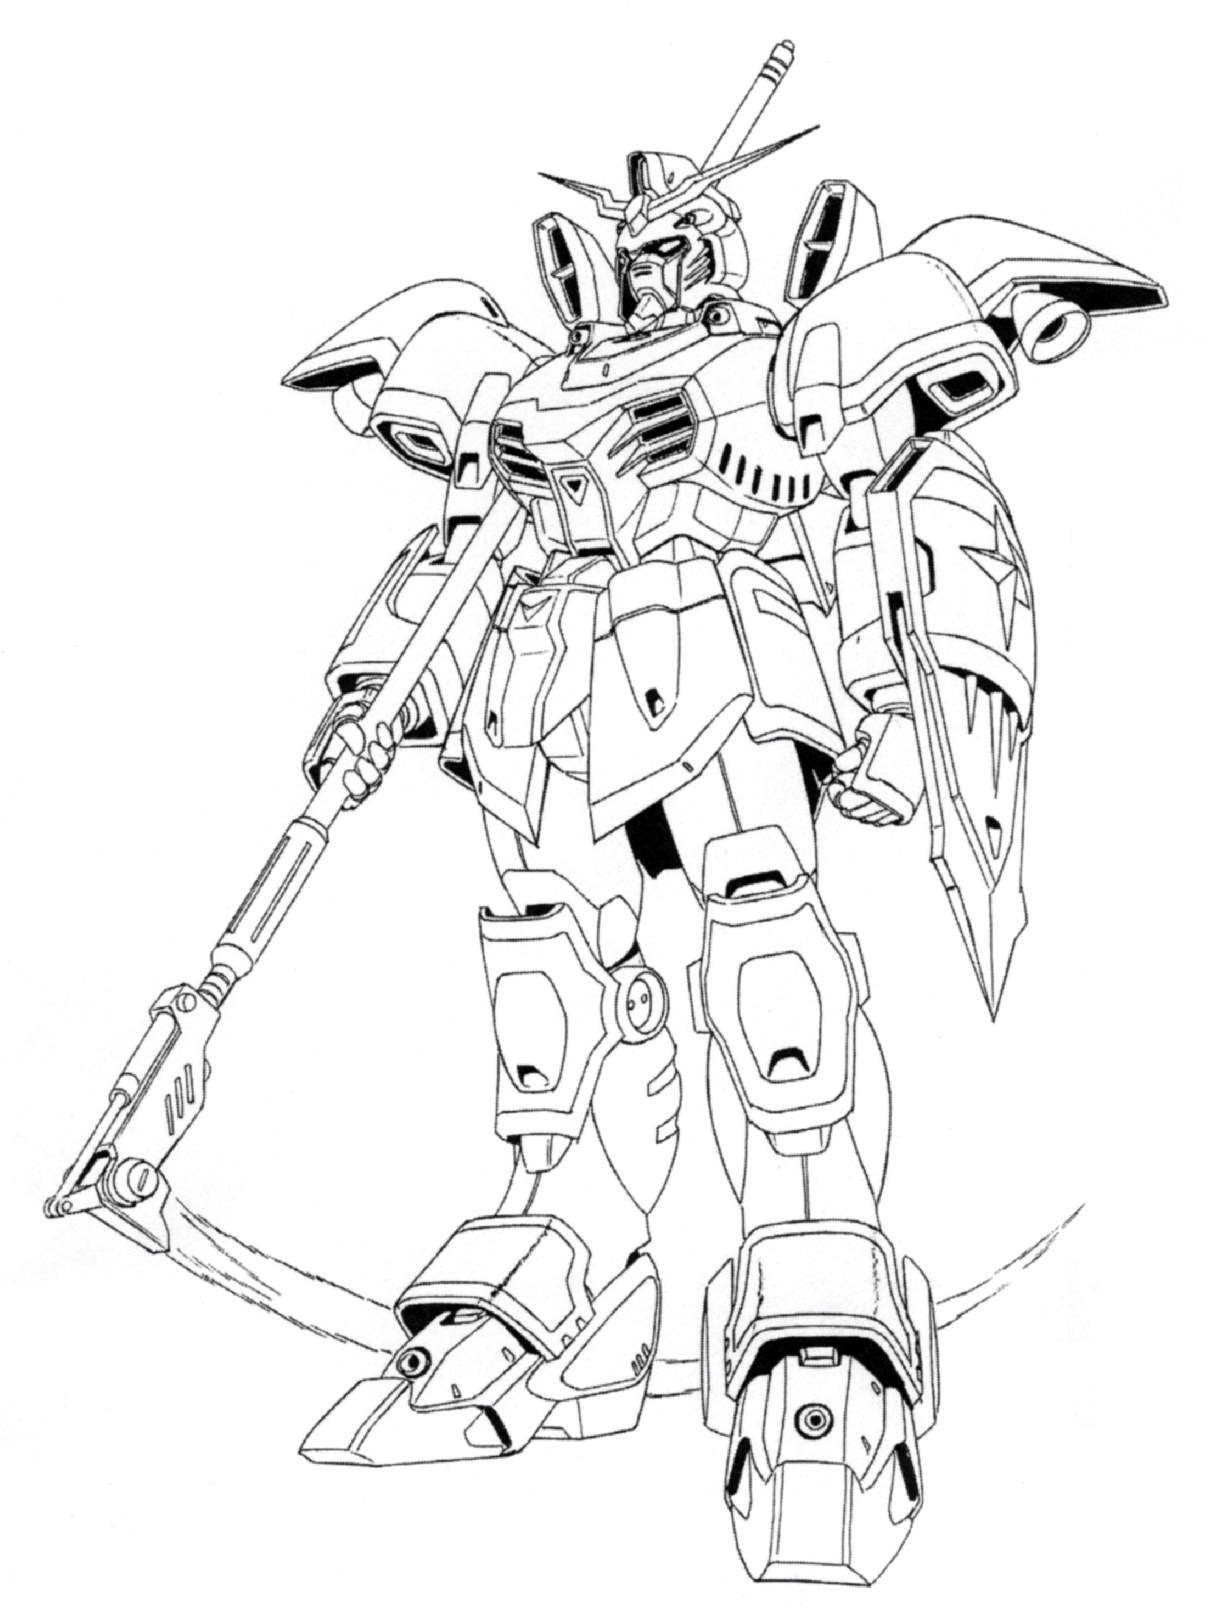 for Gundam wing coloring pages